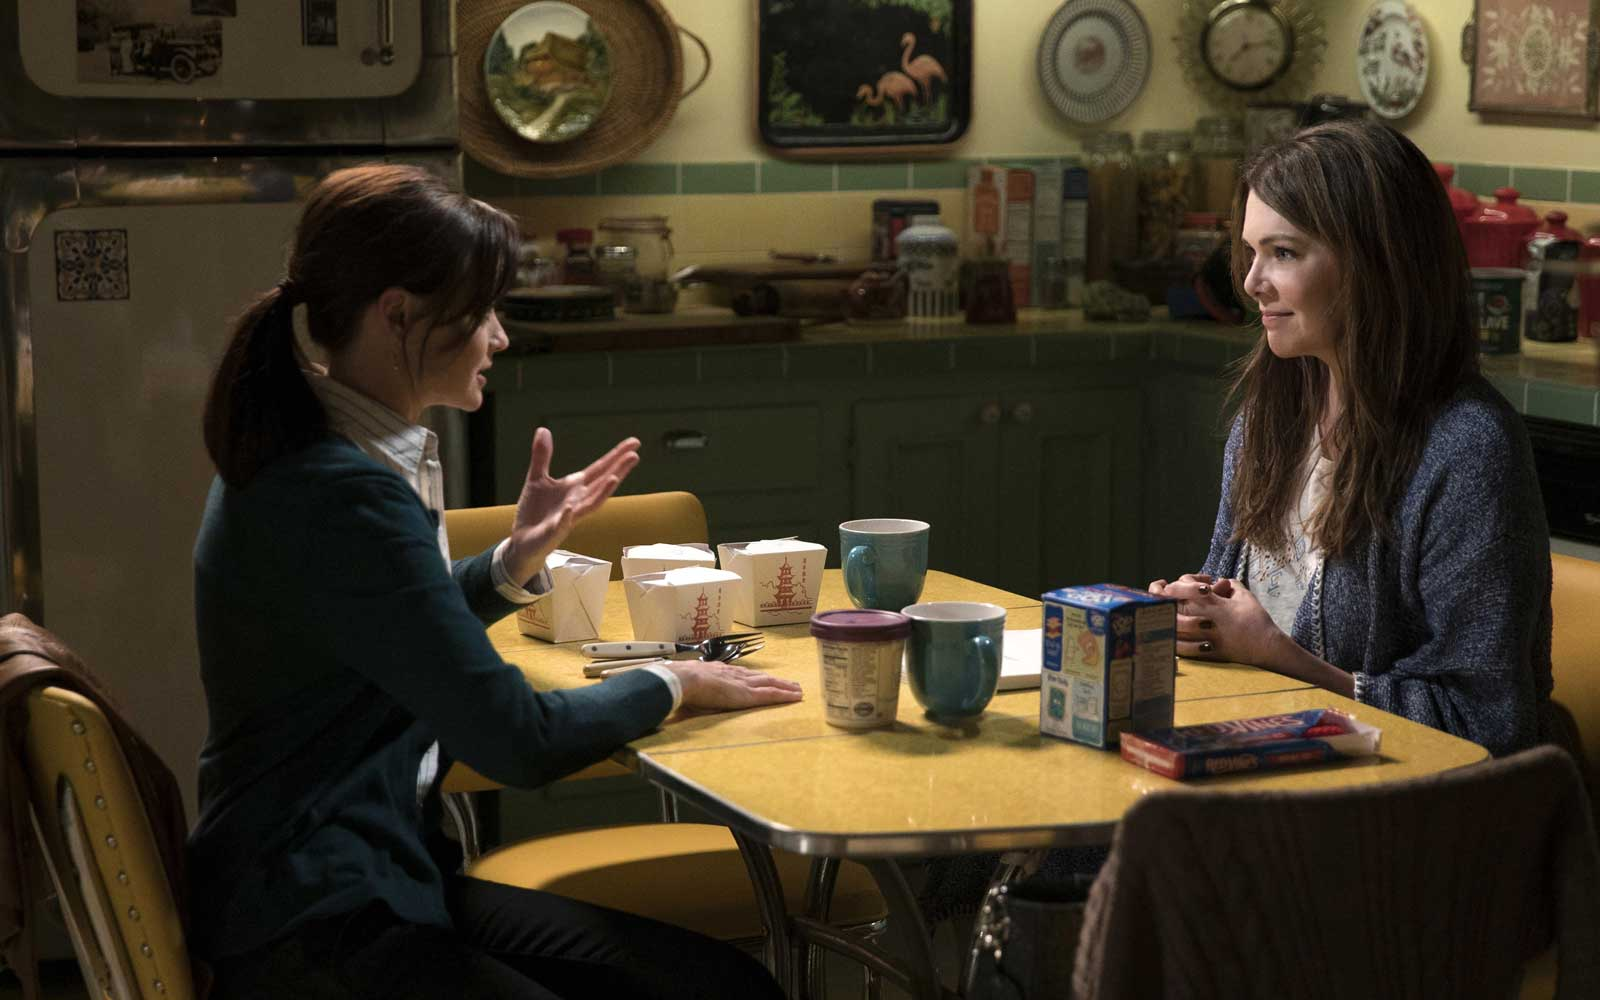 'Gilmore Girls' Fans Can Have a Holiday Feast at Lorelai's House in Stars Hollow This Year